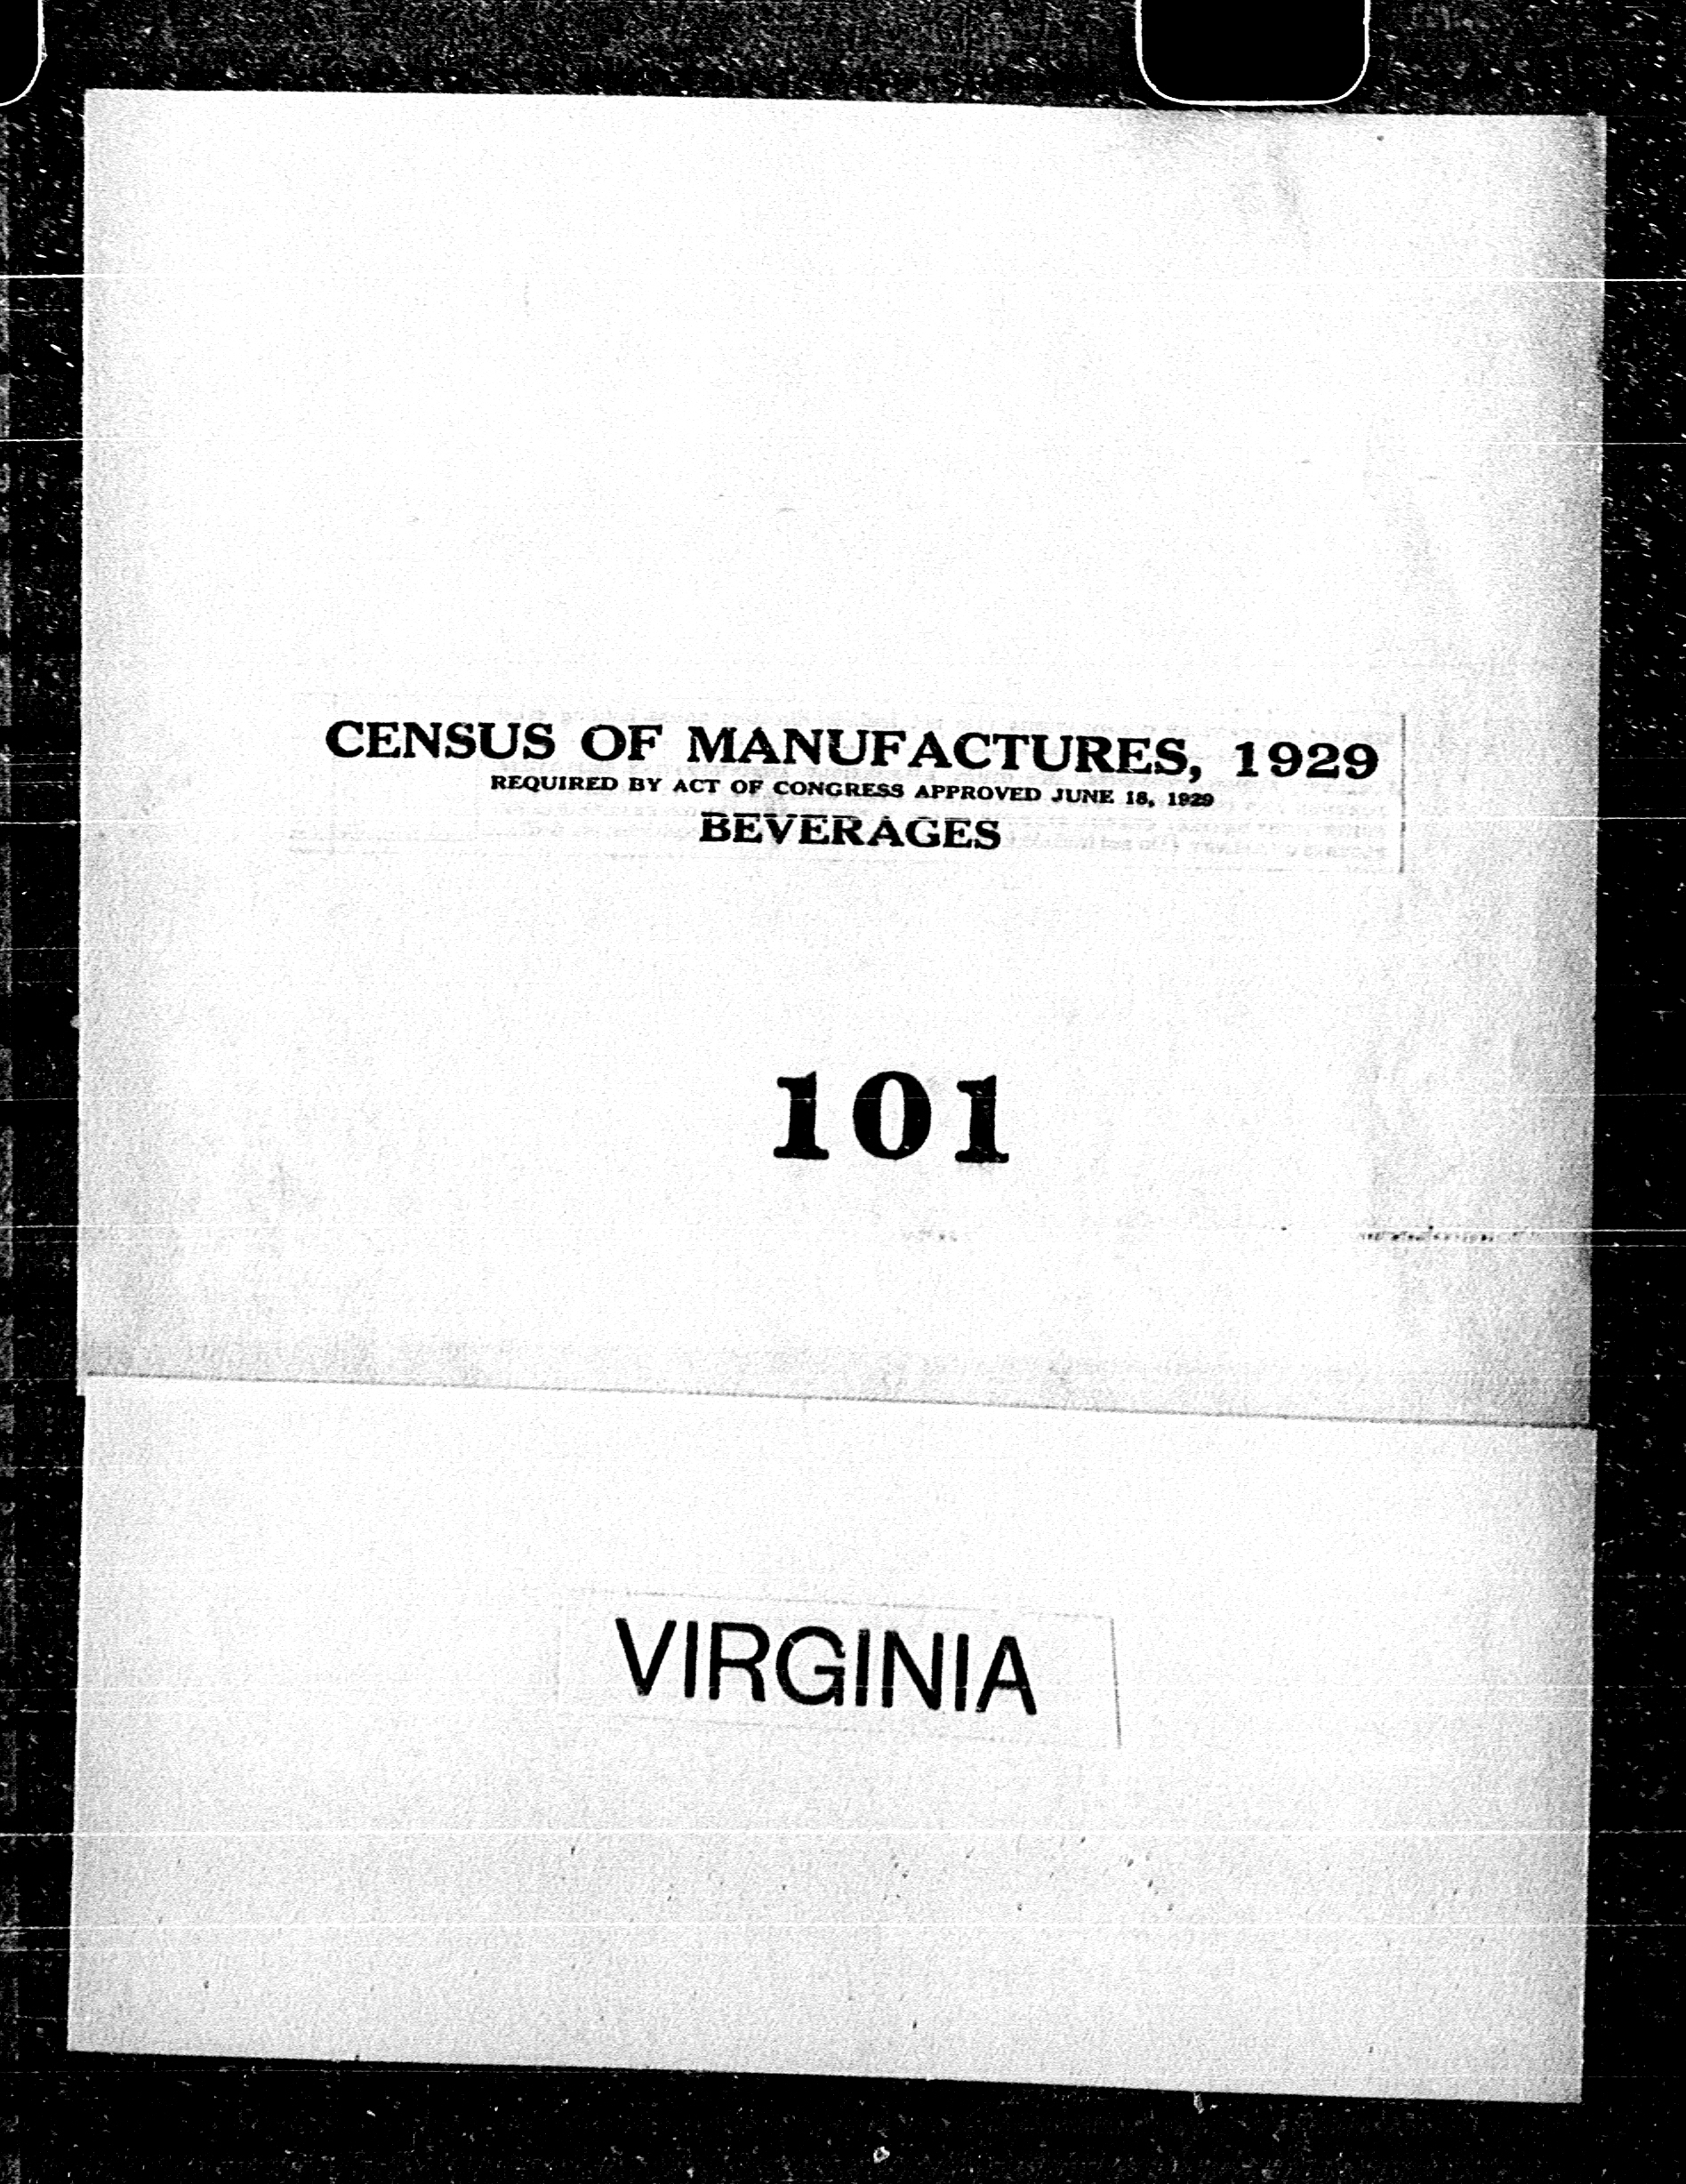 Virginia: Industry No. 101 - Beverages